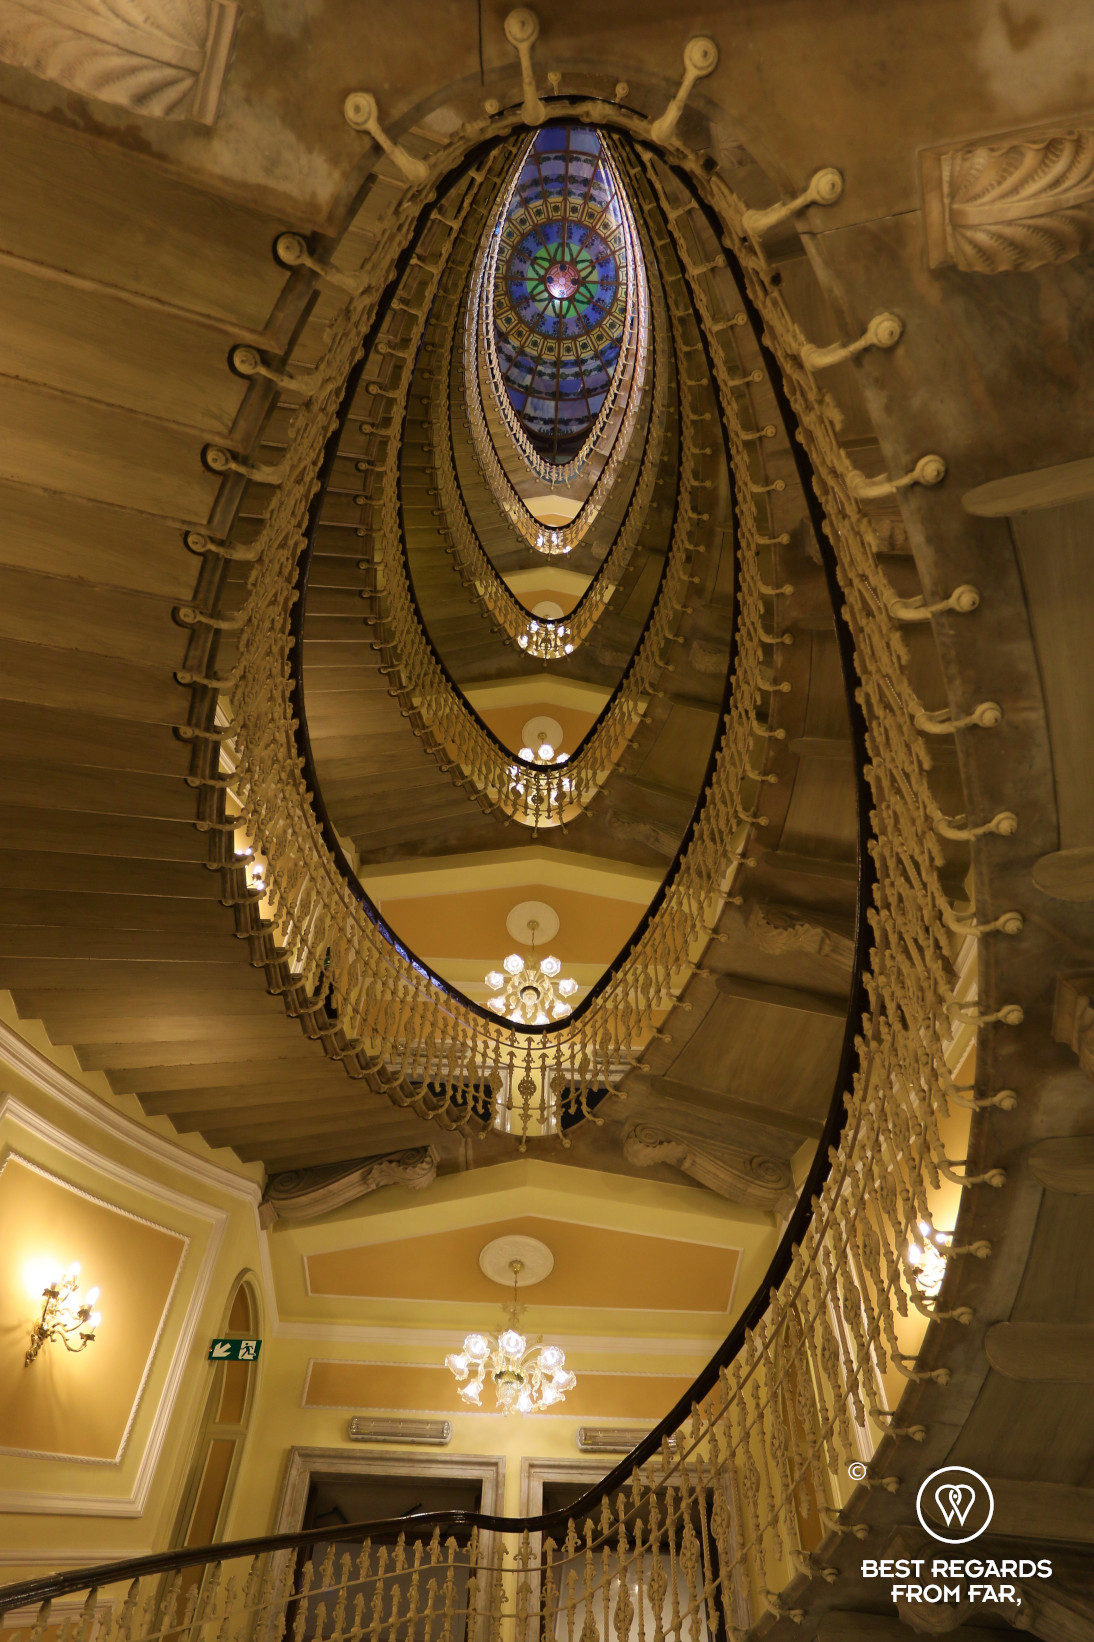 The beautiful spiral staircase of the Hotel Bristol Palace, Genoa, Liguria, Italy